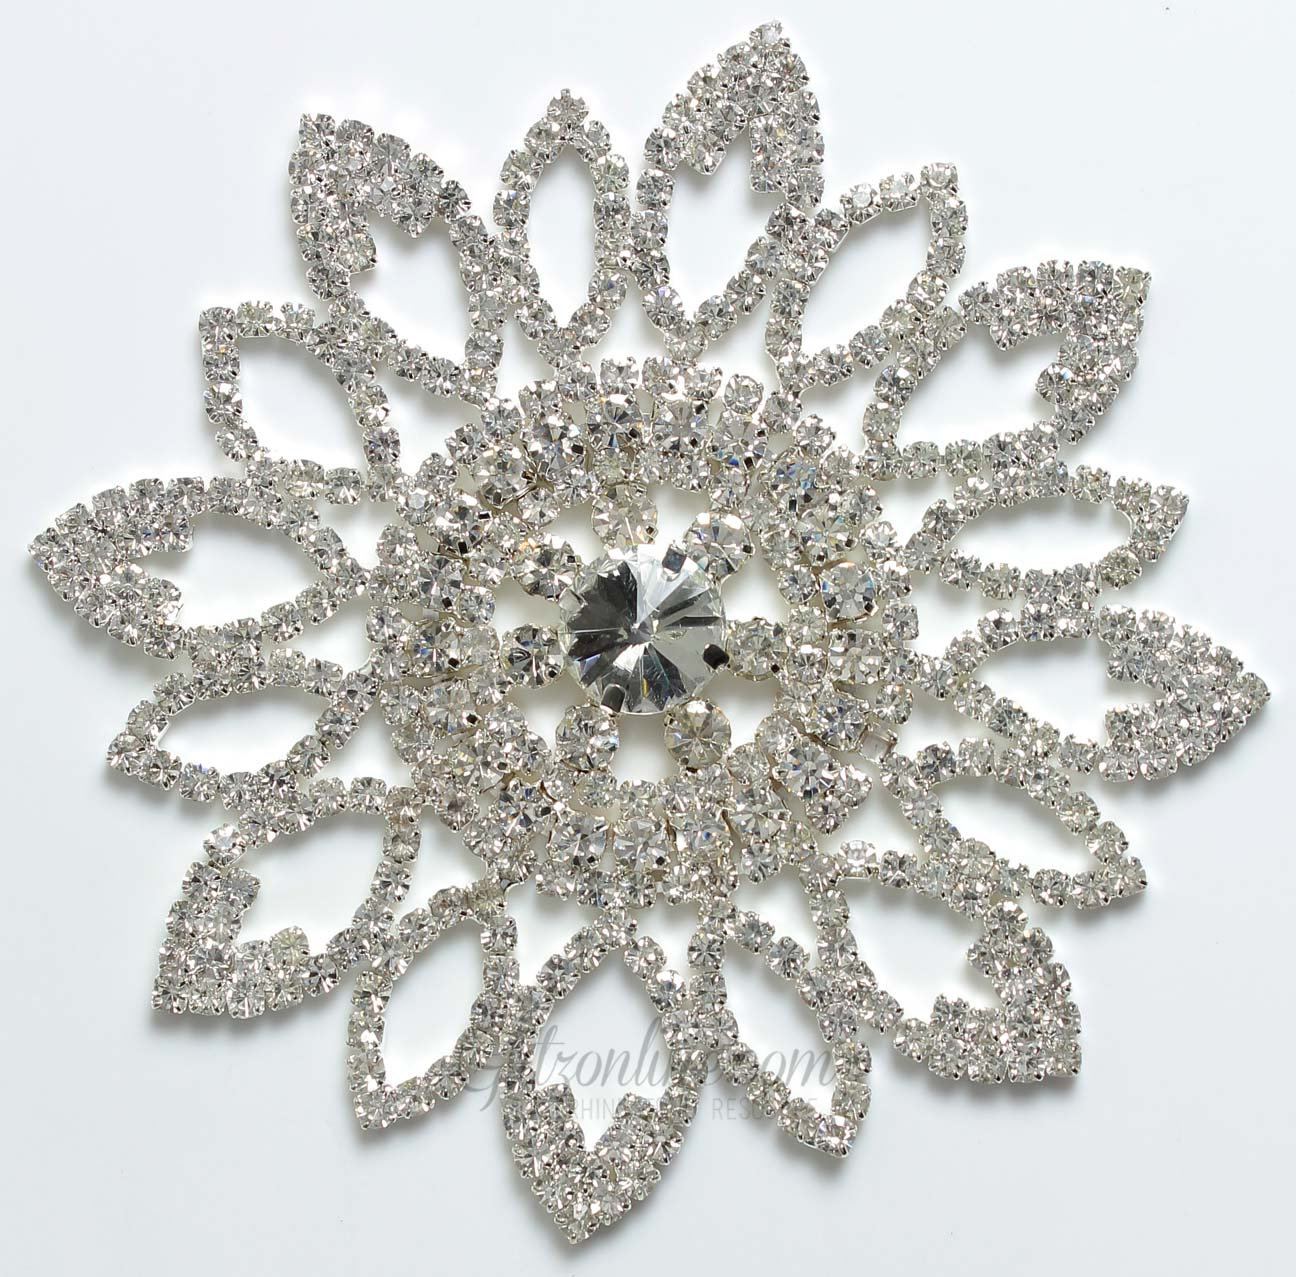 1307 Crystal Rhinestone Lace Applique Glitz And Glamour